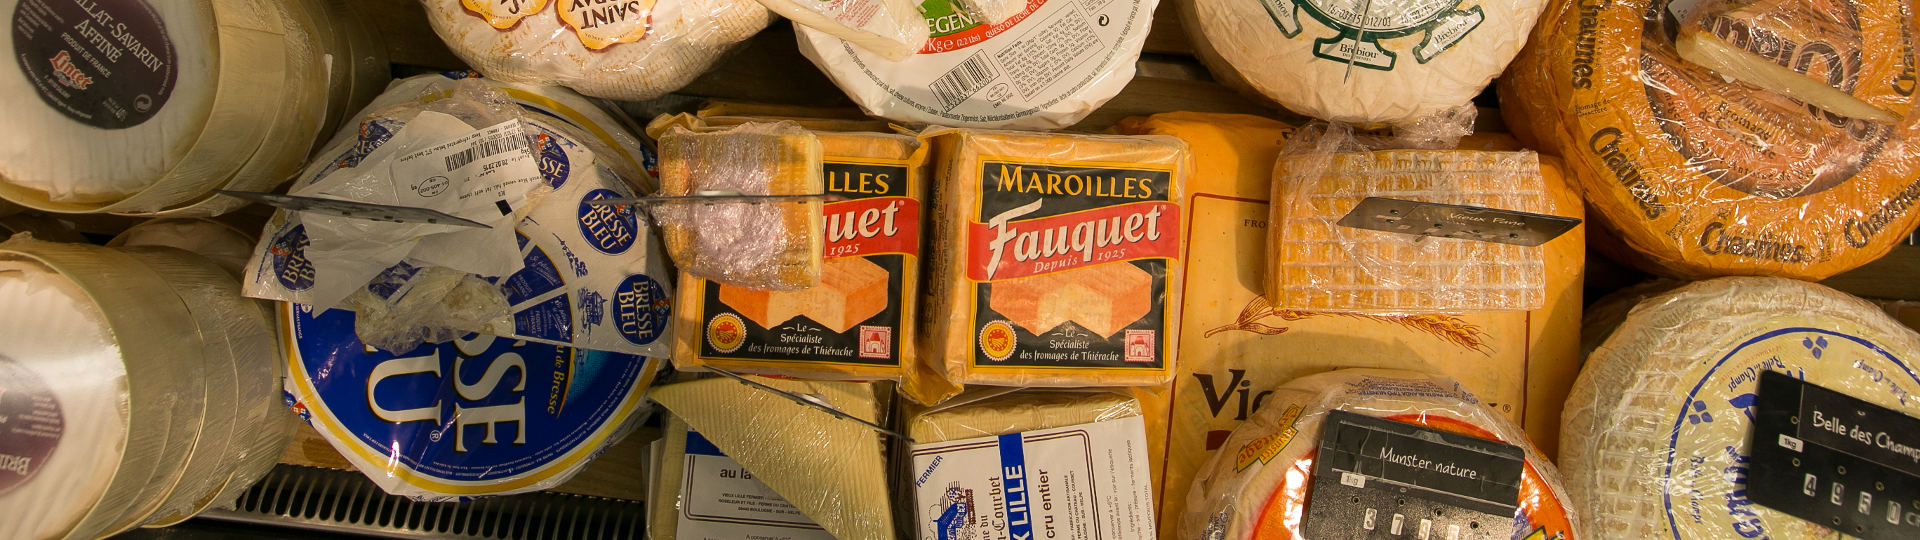 Delicatessen products french cheese